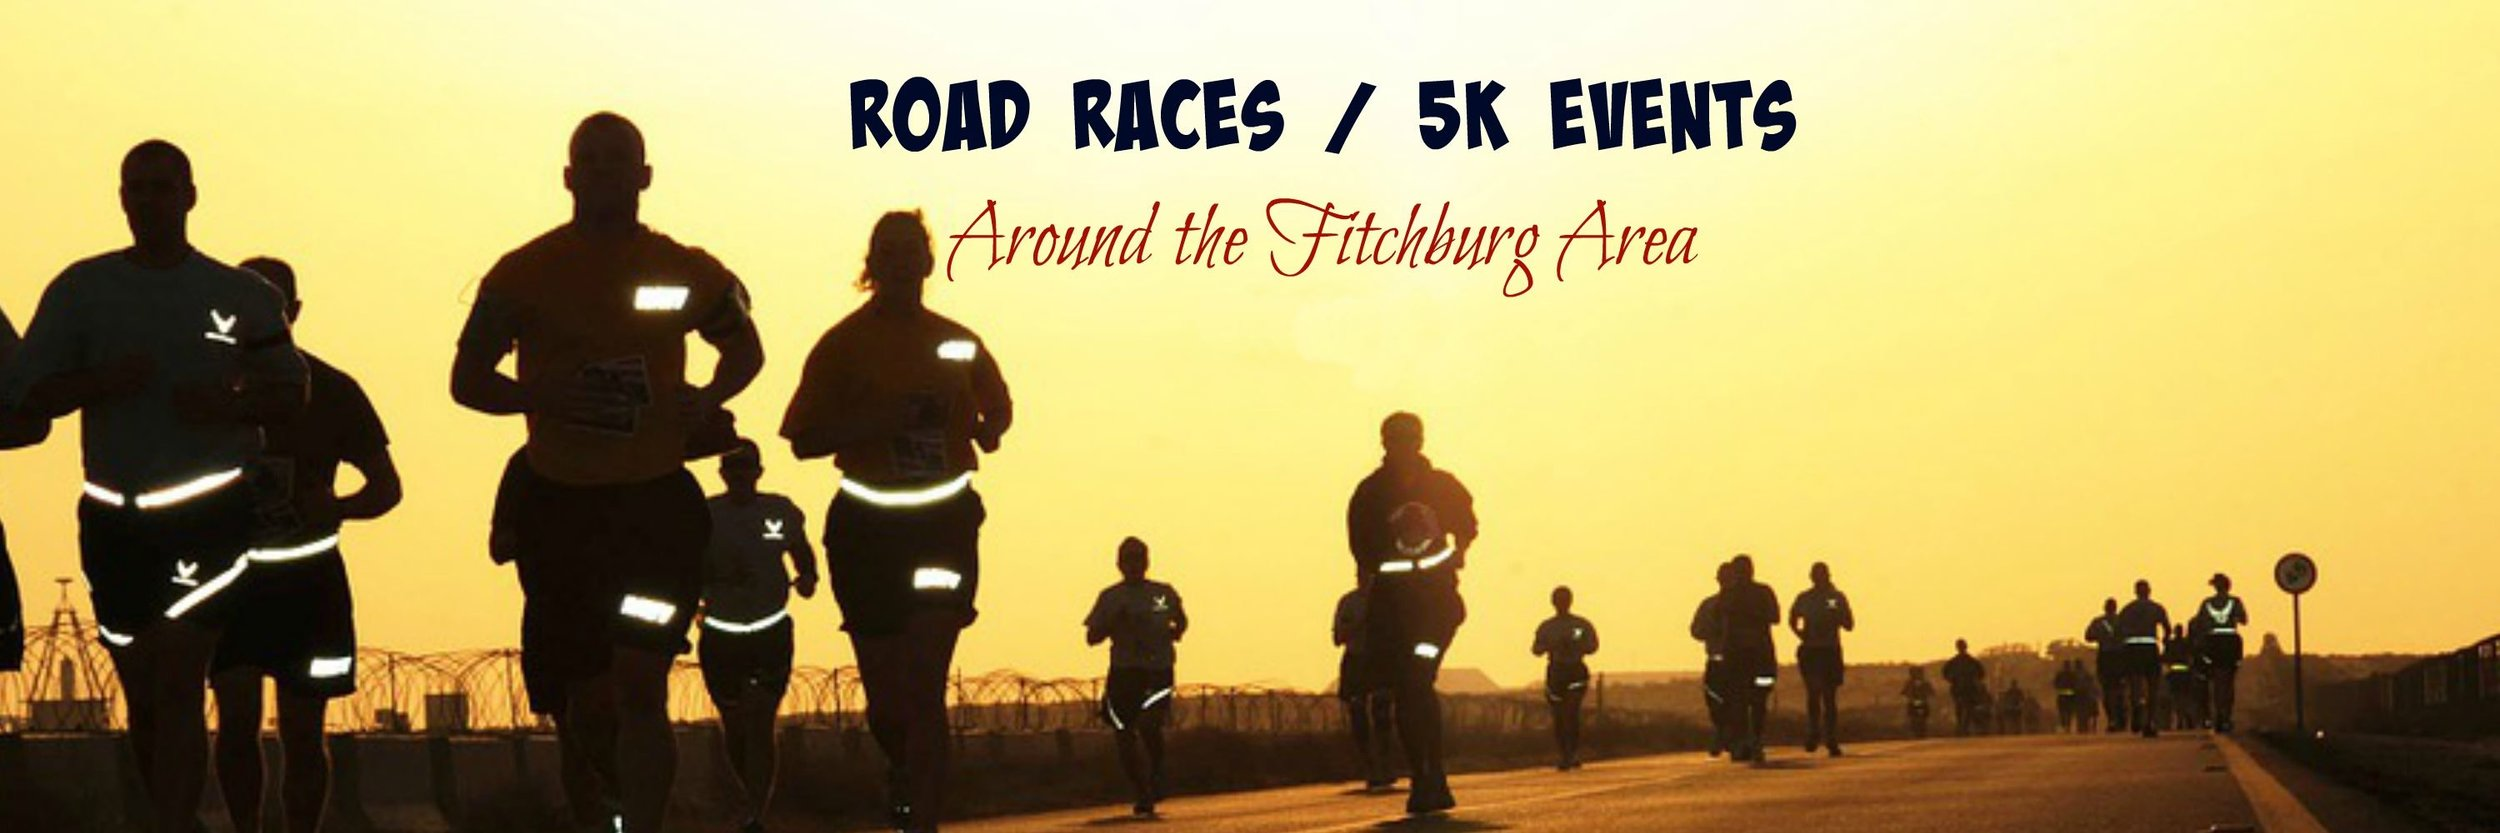 road races 5k cover no date.jpg